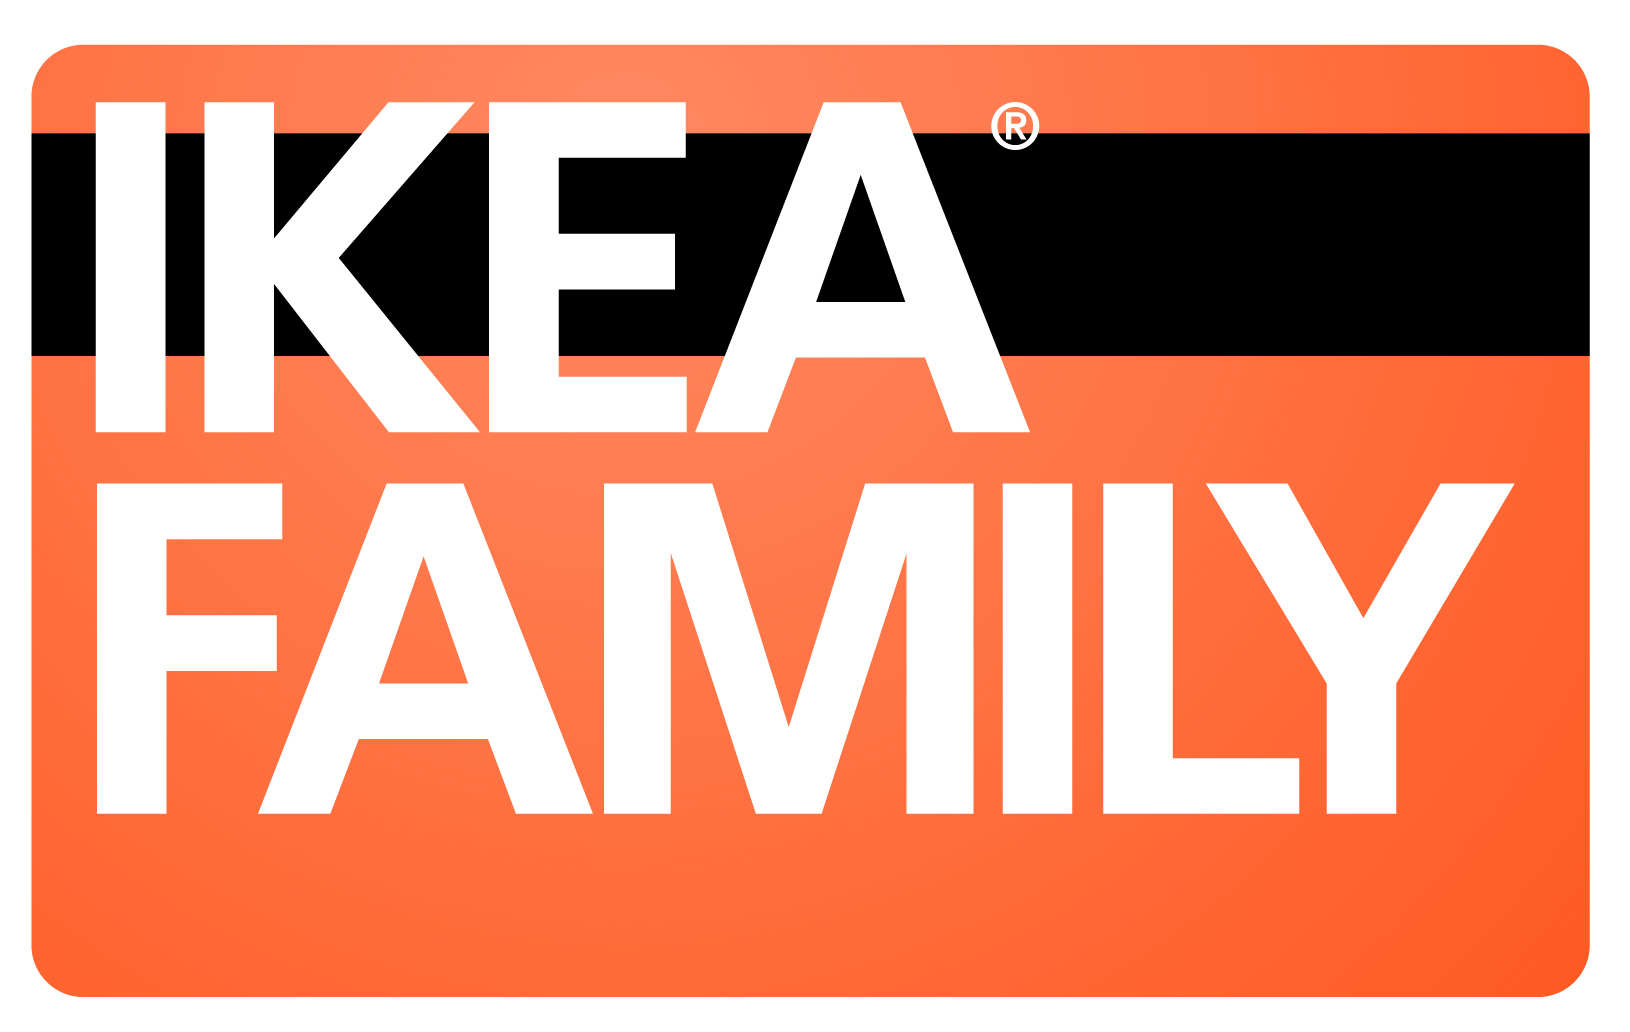 ikea family card hot canada deals hot canada deals. Black Bedroom Furniture Sets. Home Design Ideas